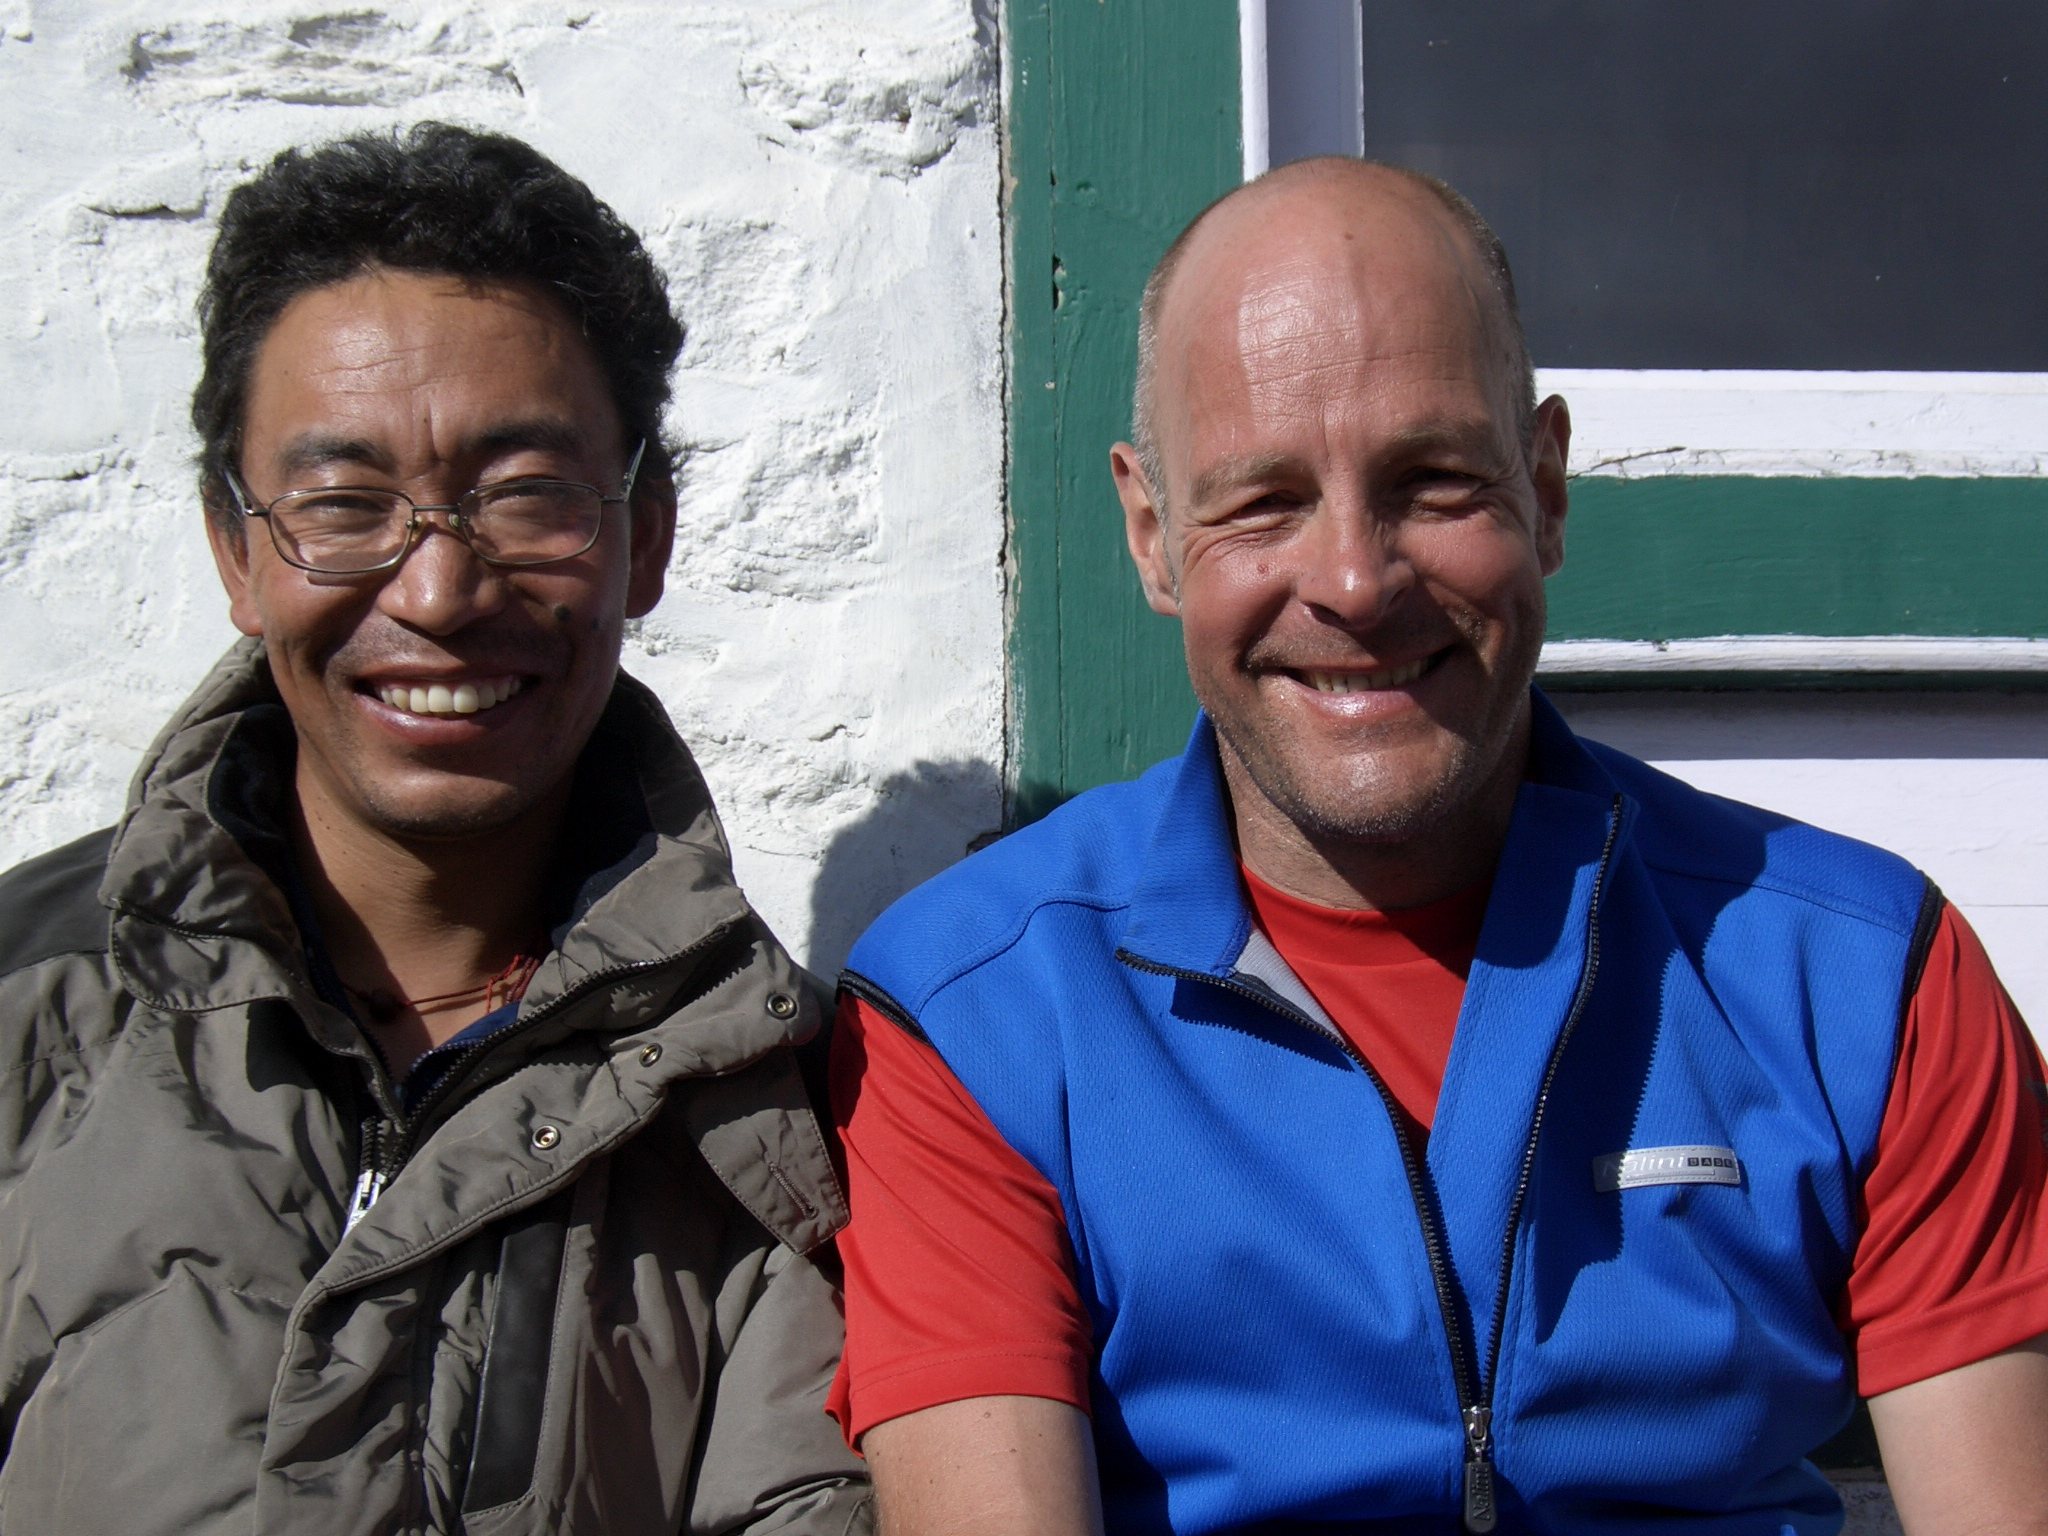 Andreas good friend Pema Chhossang Sherpa